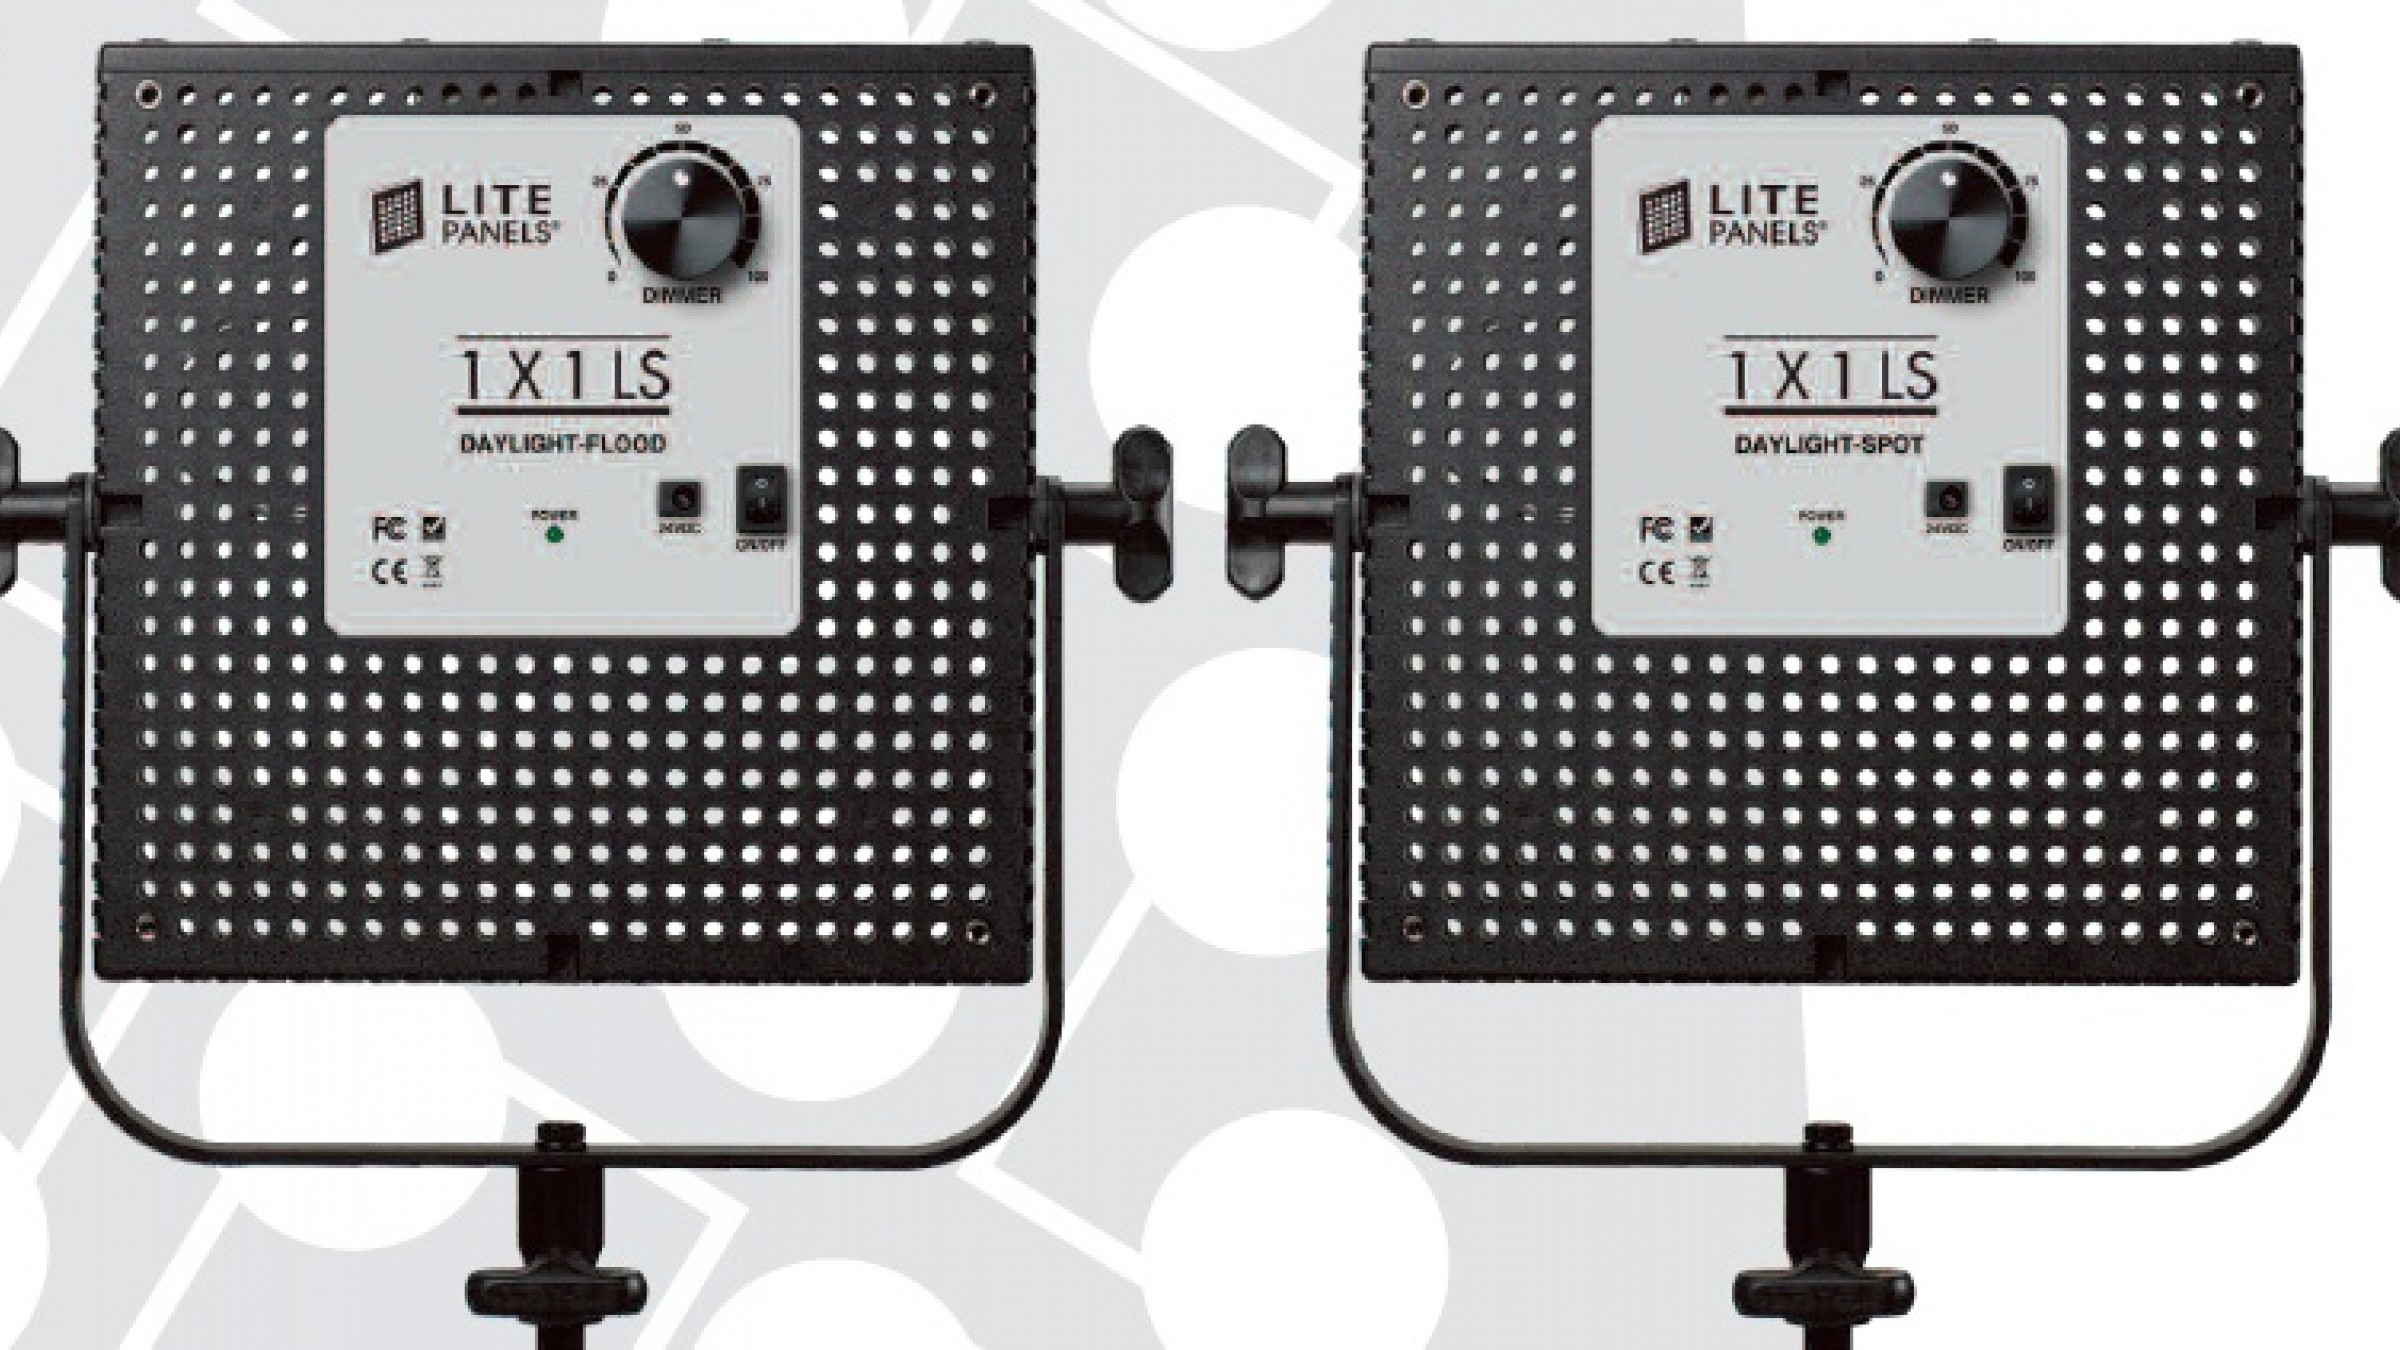 Litepanels 1x1 LS?itok=fHRjHS_9 litepanels unveils a new budget line of 1x1 led panels aimed at  at bayanpartner.co